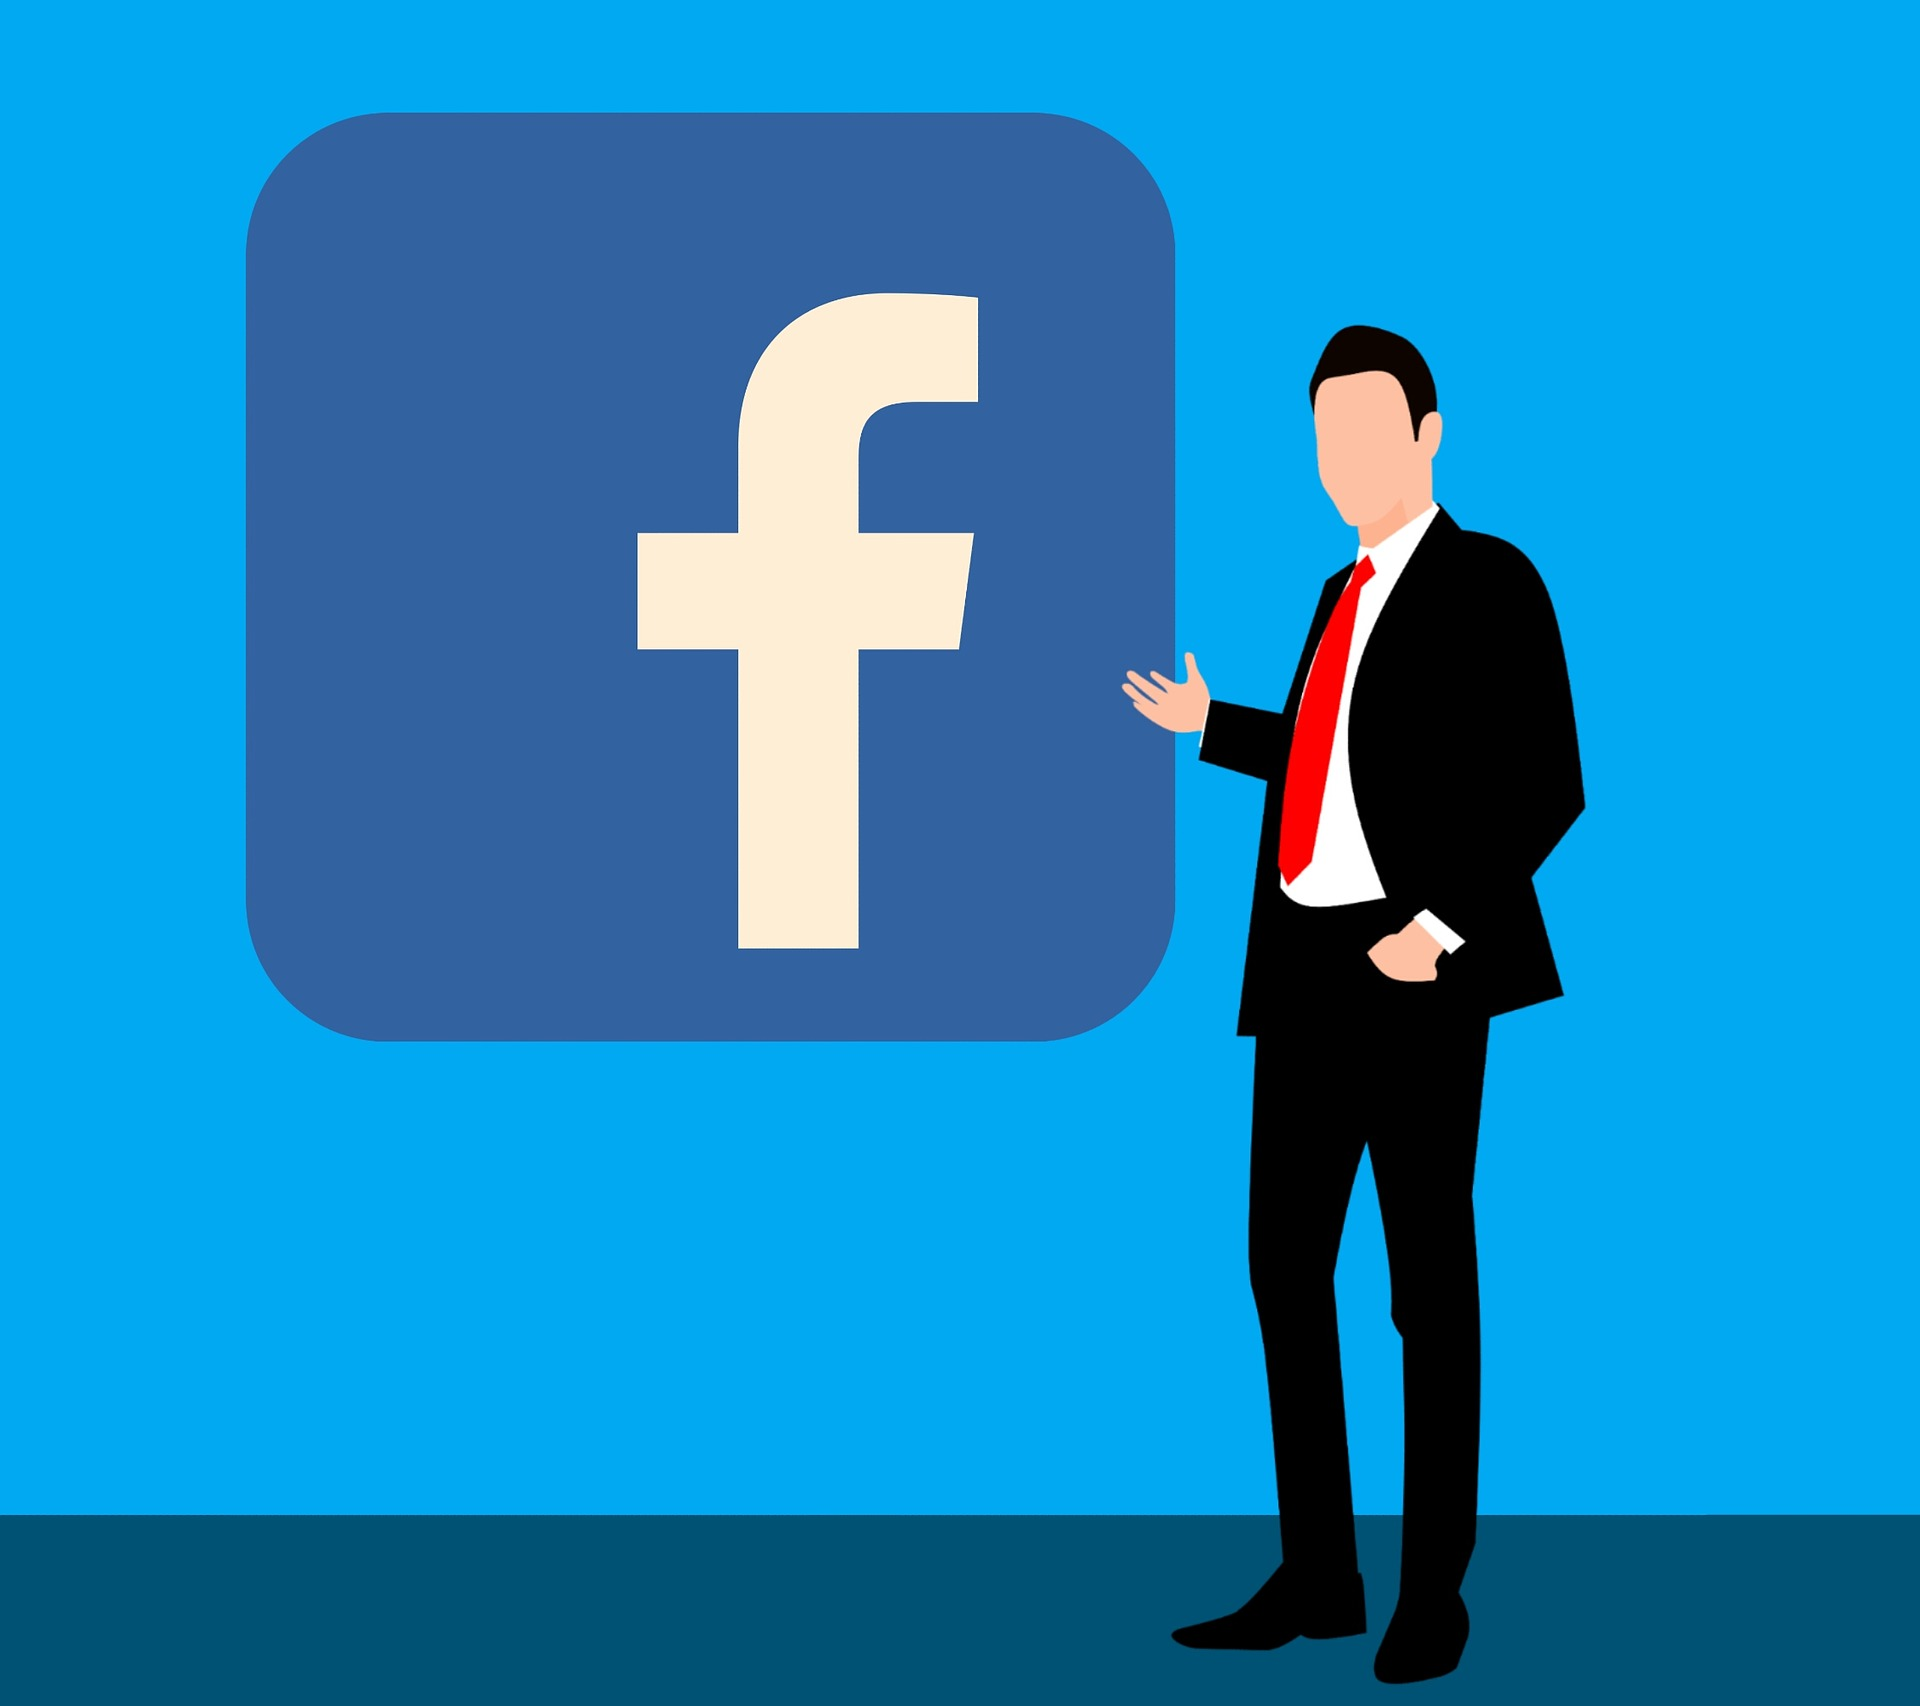 Combine-These-2-Secret-Words-To-Increase-Conversion-on-Your-Next-Facebook-Ad